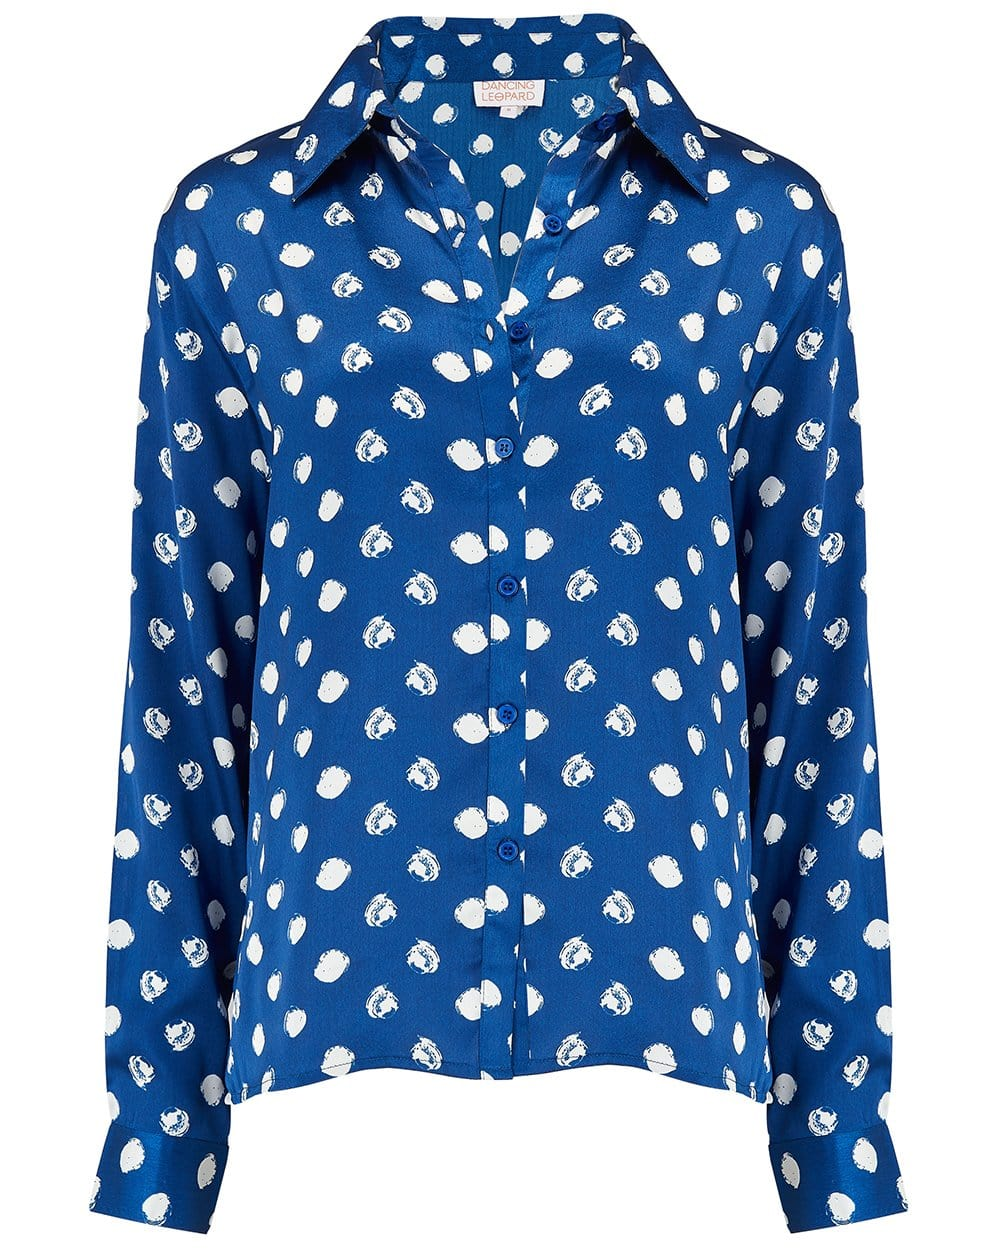 Front view of Dancing Leopard Nevada Shirt in Navy Dotty Print on white background